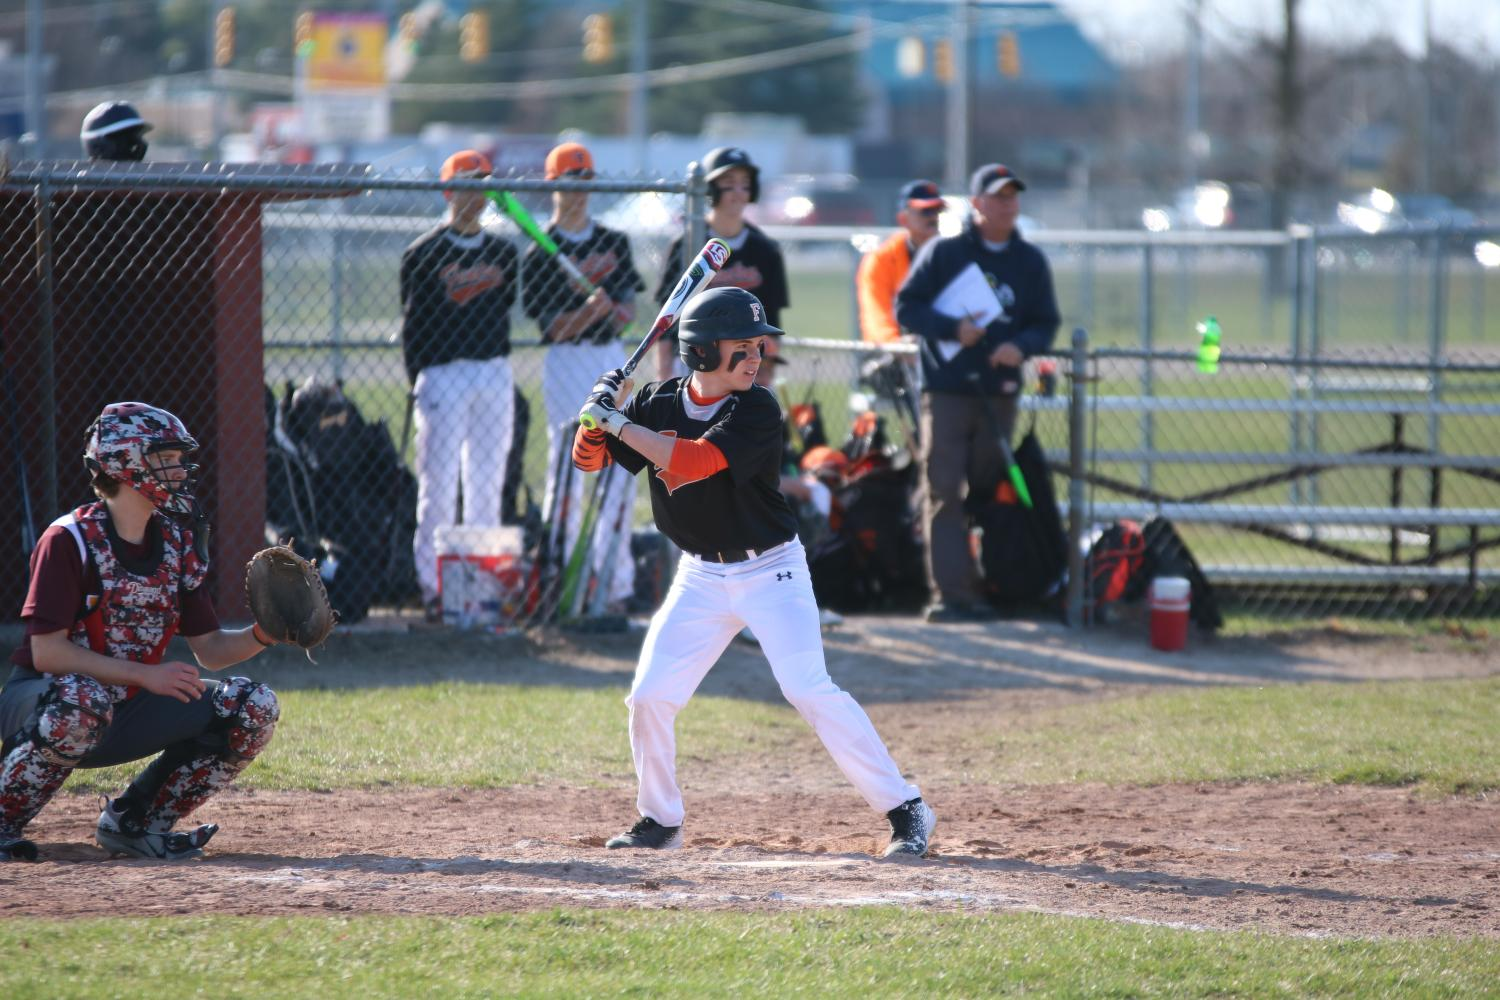 Freshman Brady Triola waits for the pitch to hit the ball.